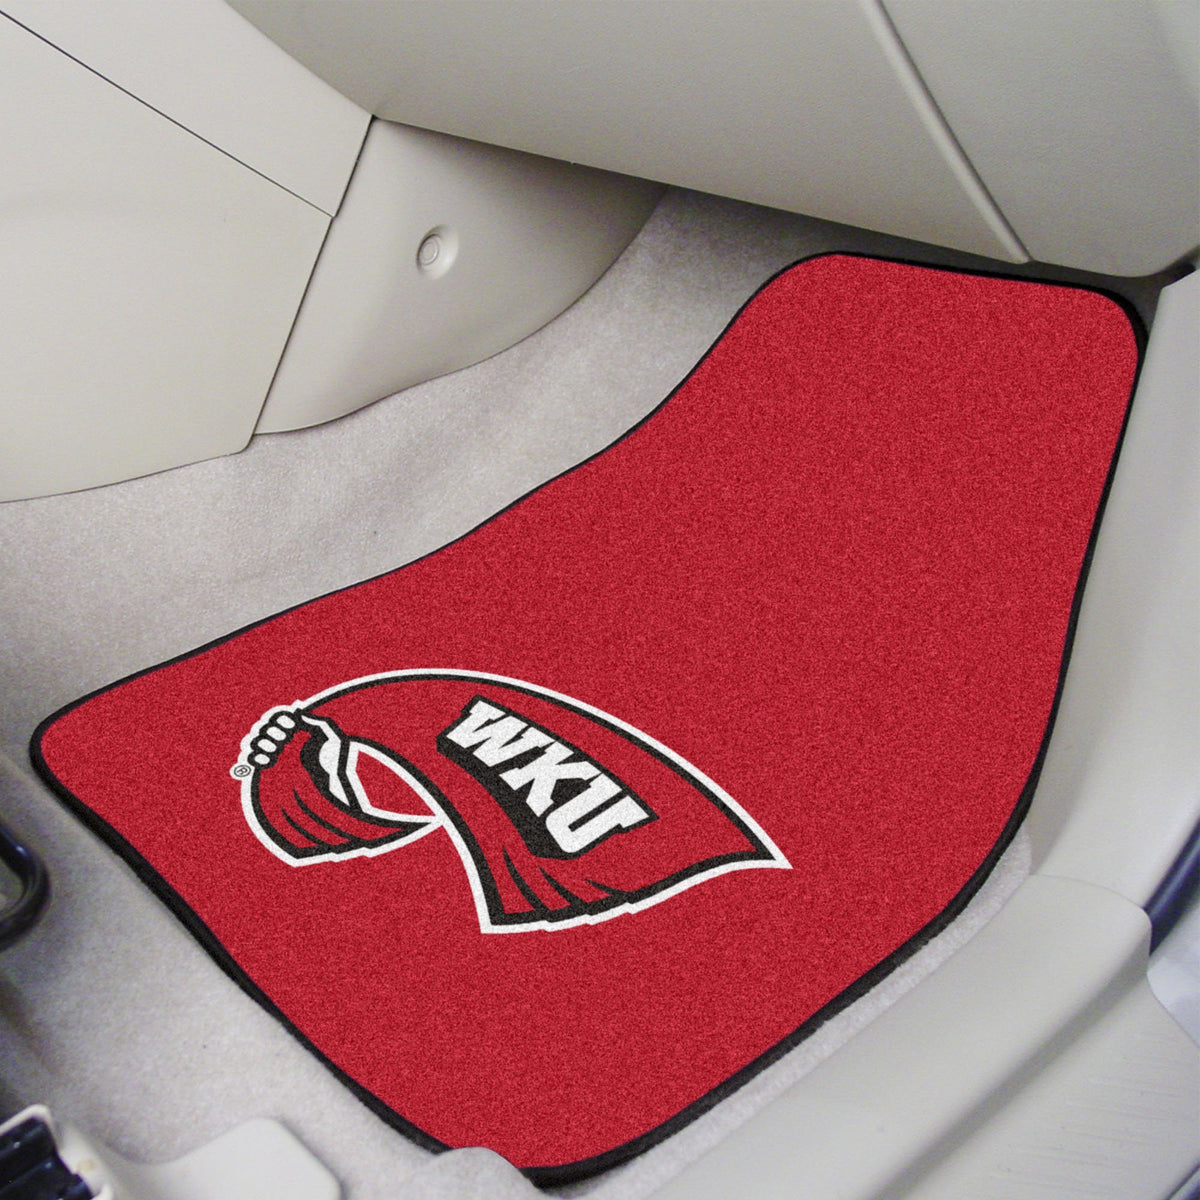 Collegiate - Carpet Car Mat, 2-Piece Set: T - Z Collegiate Car Mat, Front Car Mats, 2-pc Carpet Car Mat Set, Collegiate, Auto Fan Mats Western Kentucky